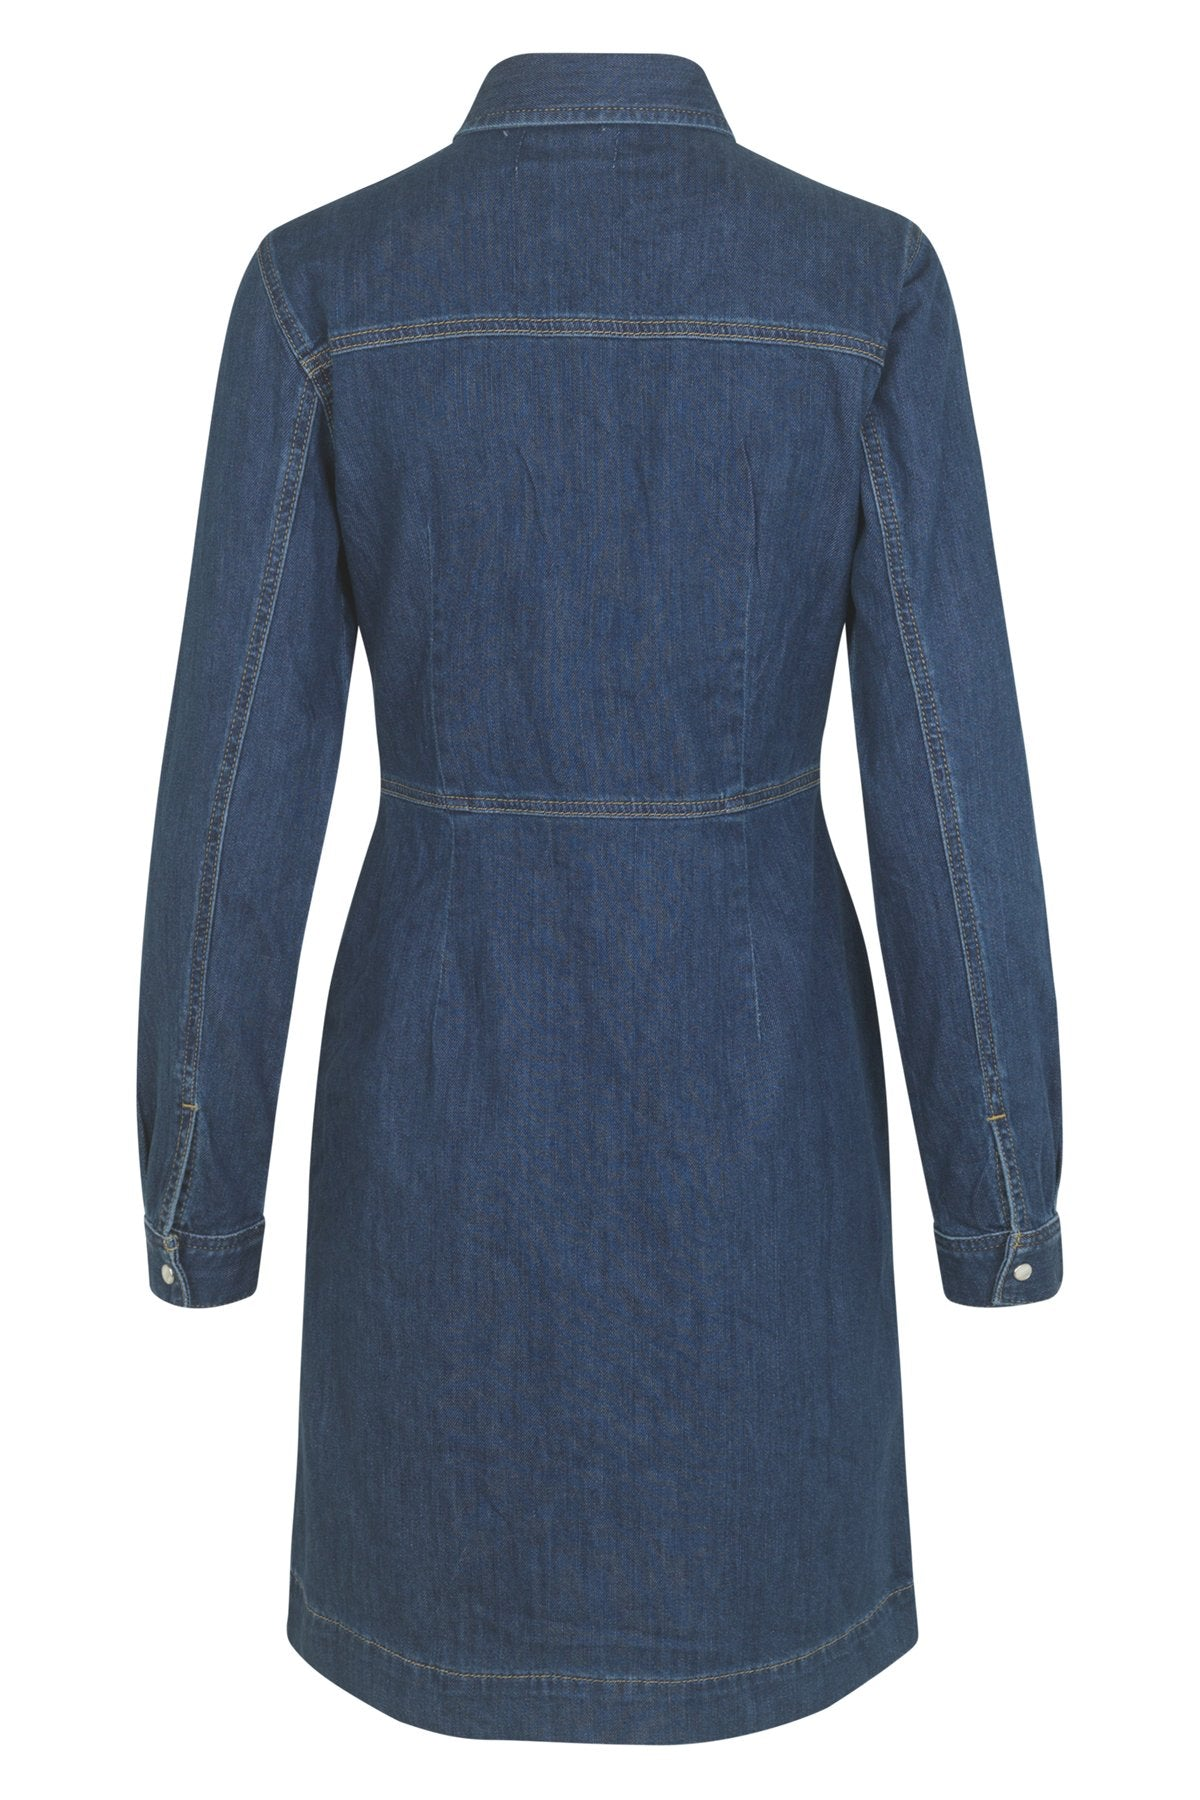 mbyM Akira shirt waister dress, blue, rear view